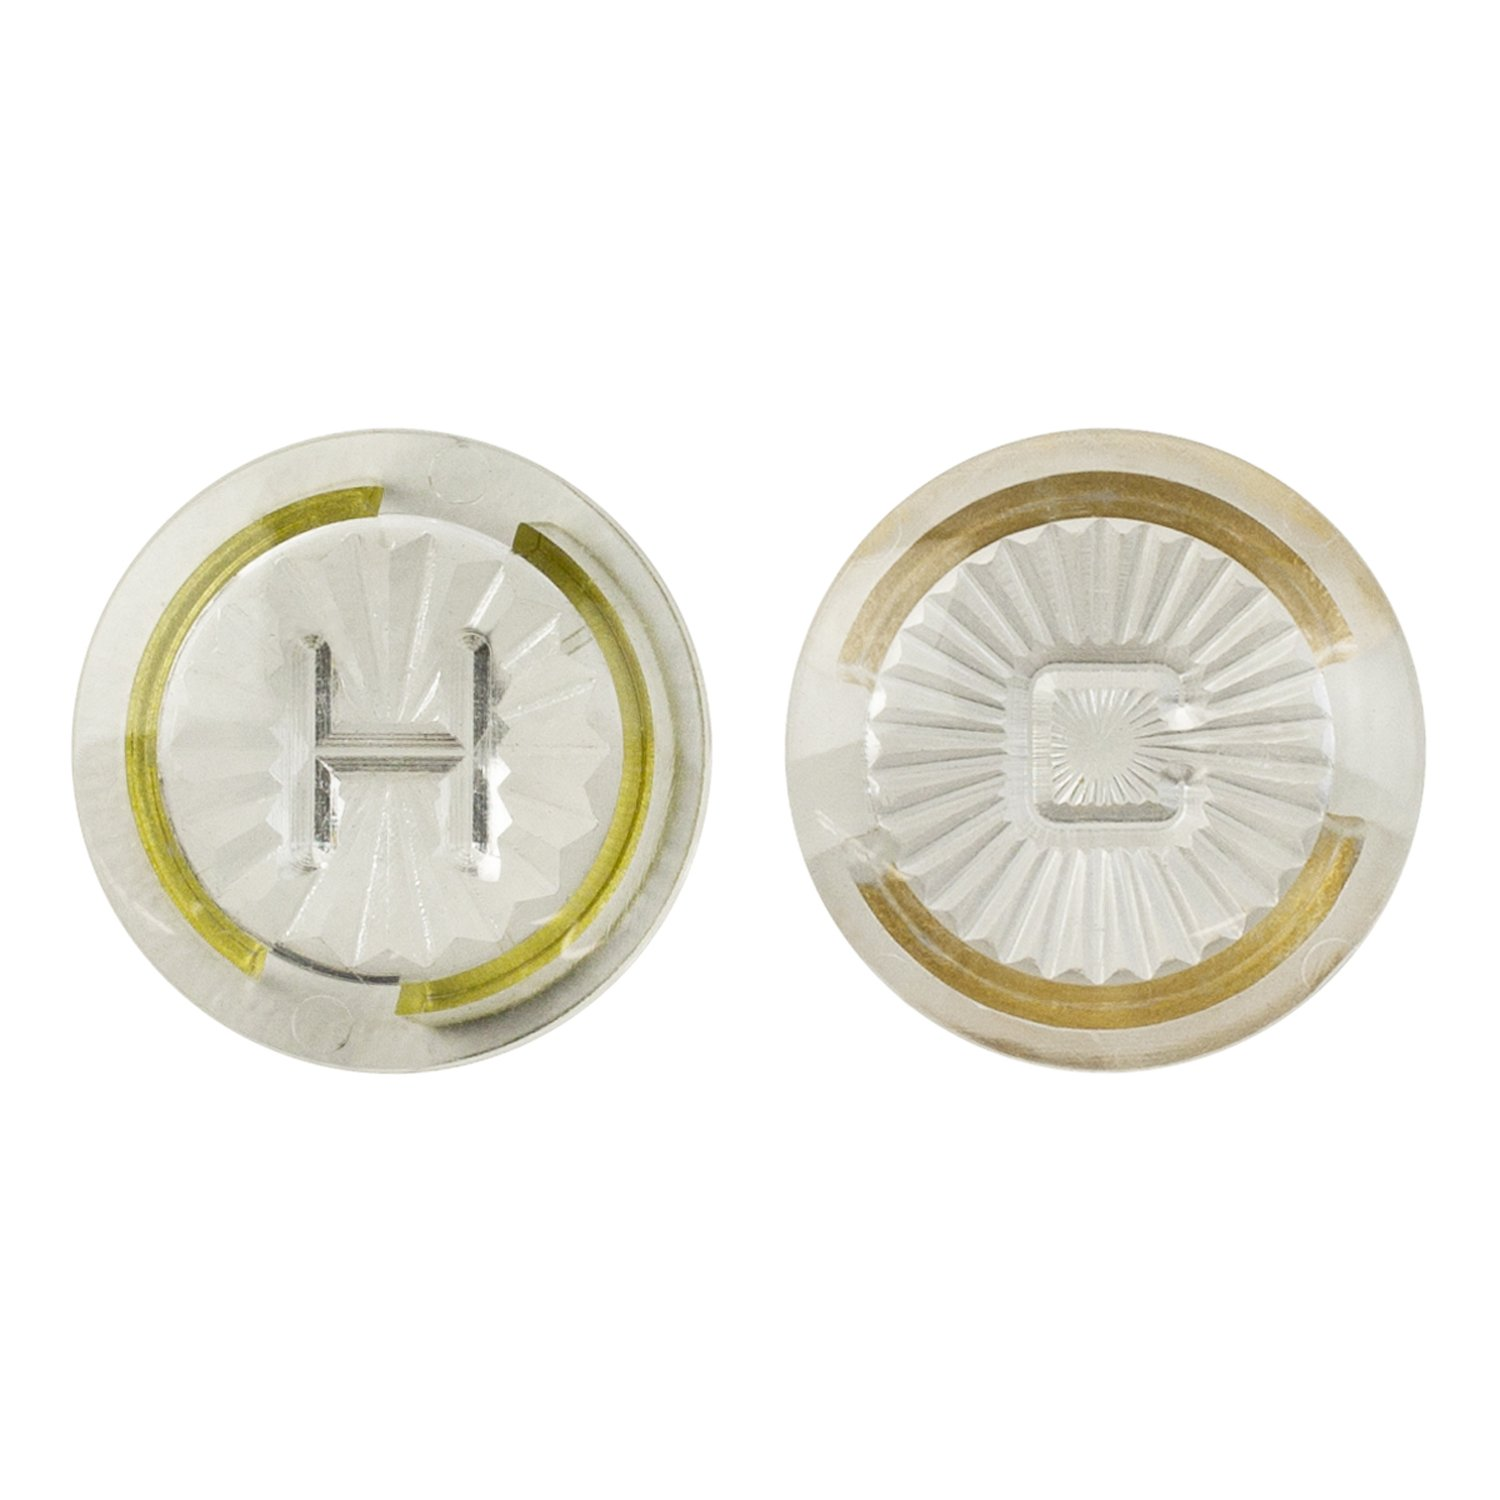 LASCO 0-6105 Hot/Cold Faucet Handle Index Buttons for American Standard Cadet Series OEM 68498-02 Model, Acrylic